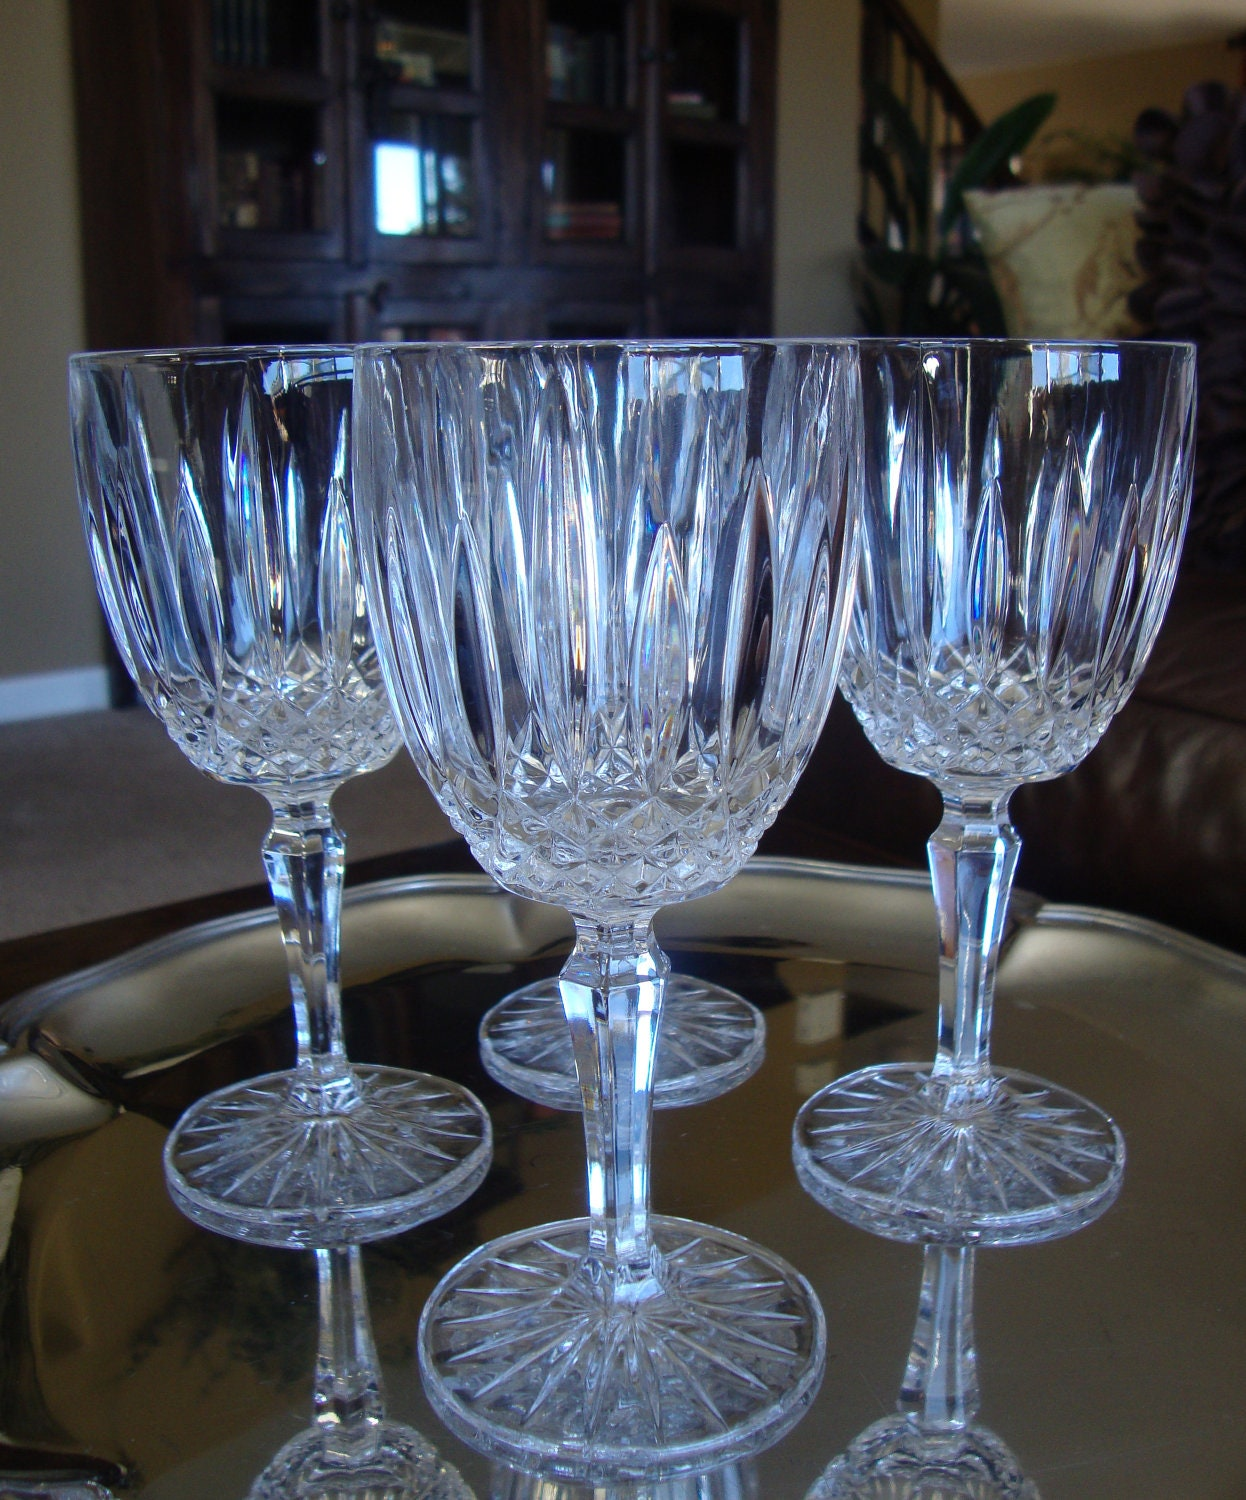 mikasa old dublin crystal wine glasses water goblets stemware. Black Bedroom Furniture Sets. Home Design Ideas